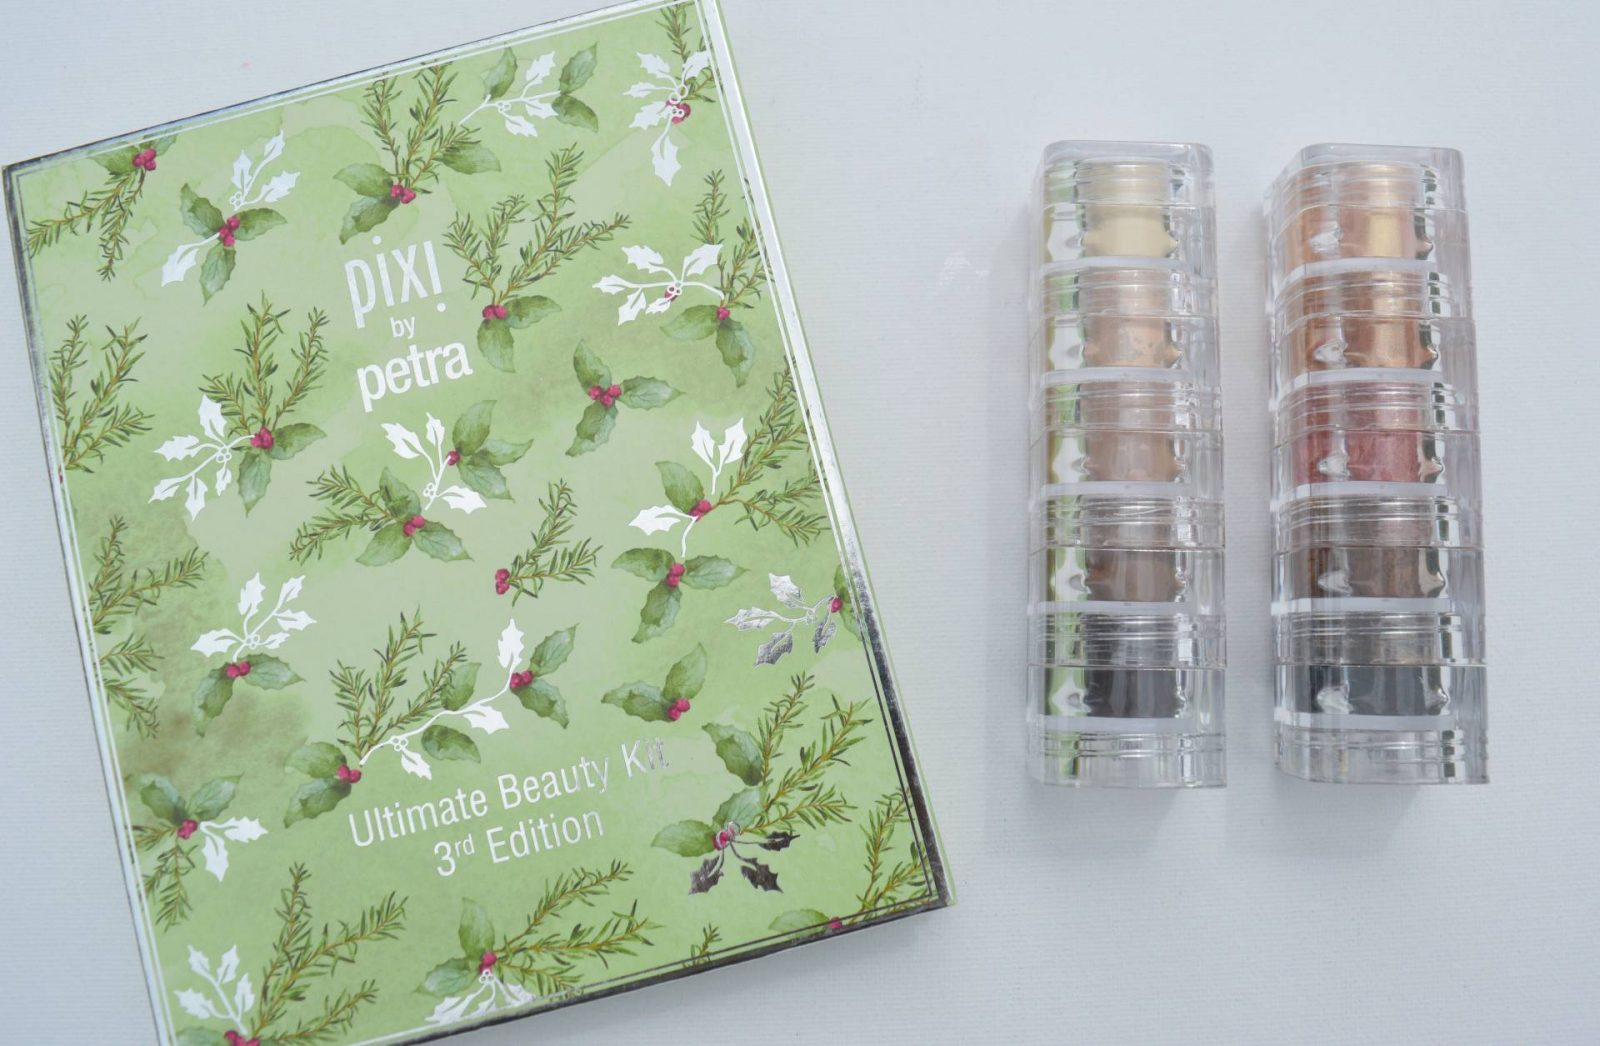 May Beauty Favourites Pixi by Petra Ultimate Beauty Kit 3rd Edition, Fairy Dust Favourites